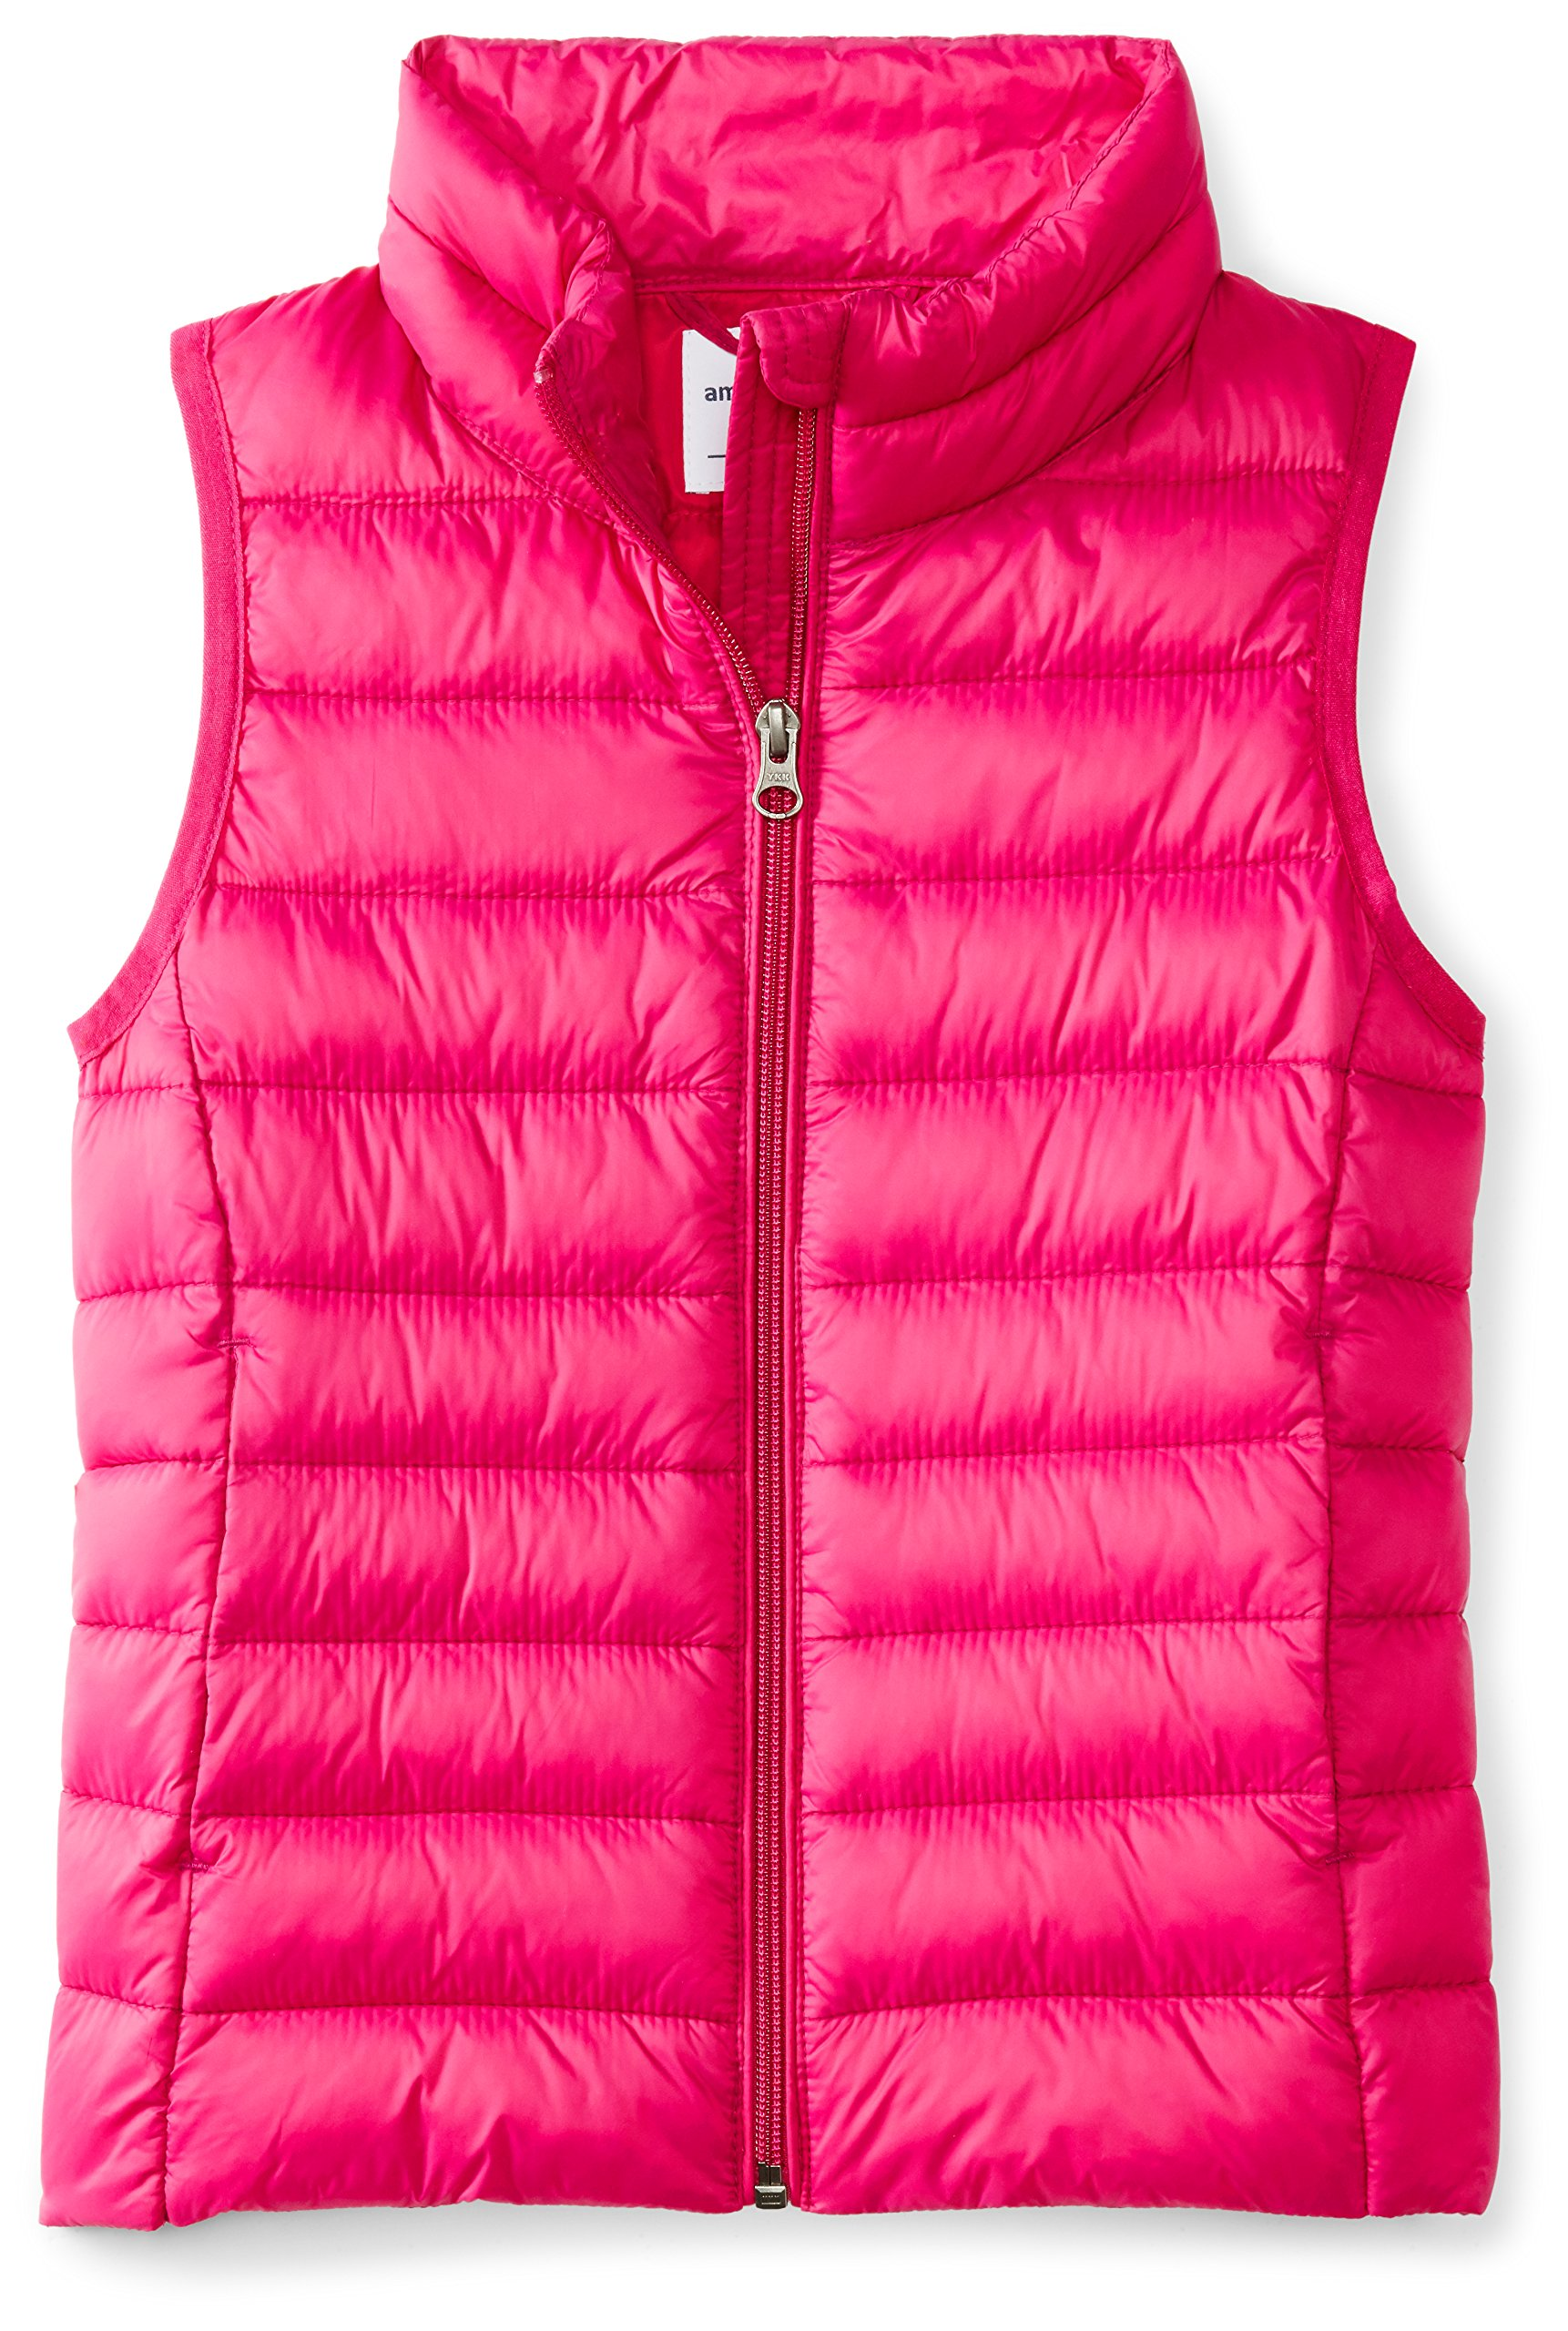 Amazon Essentials Big Girls' Lightweight Water-Resistant Packable Puffer Vest, Fuchsia Purple, Medium by Amazon Essentials